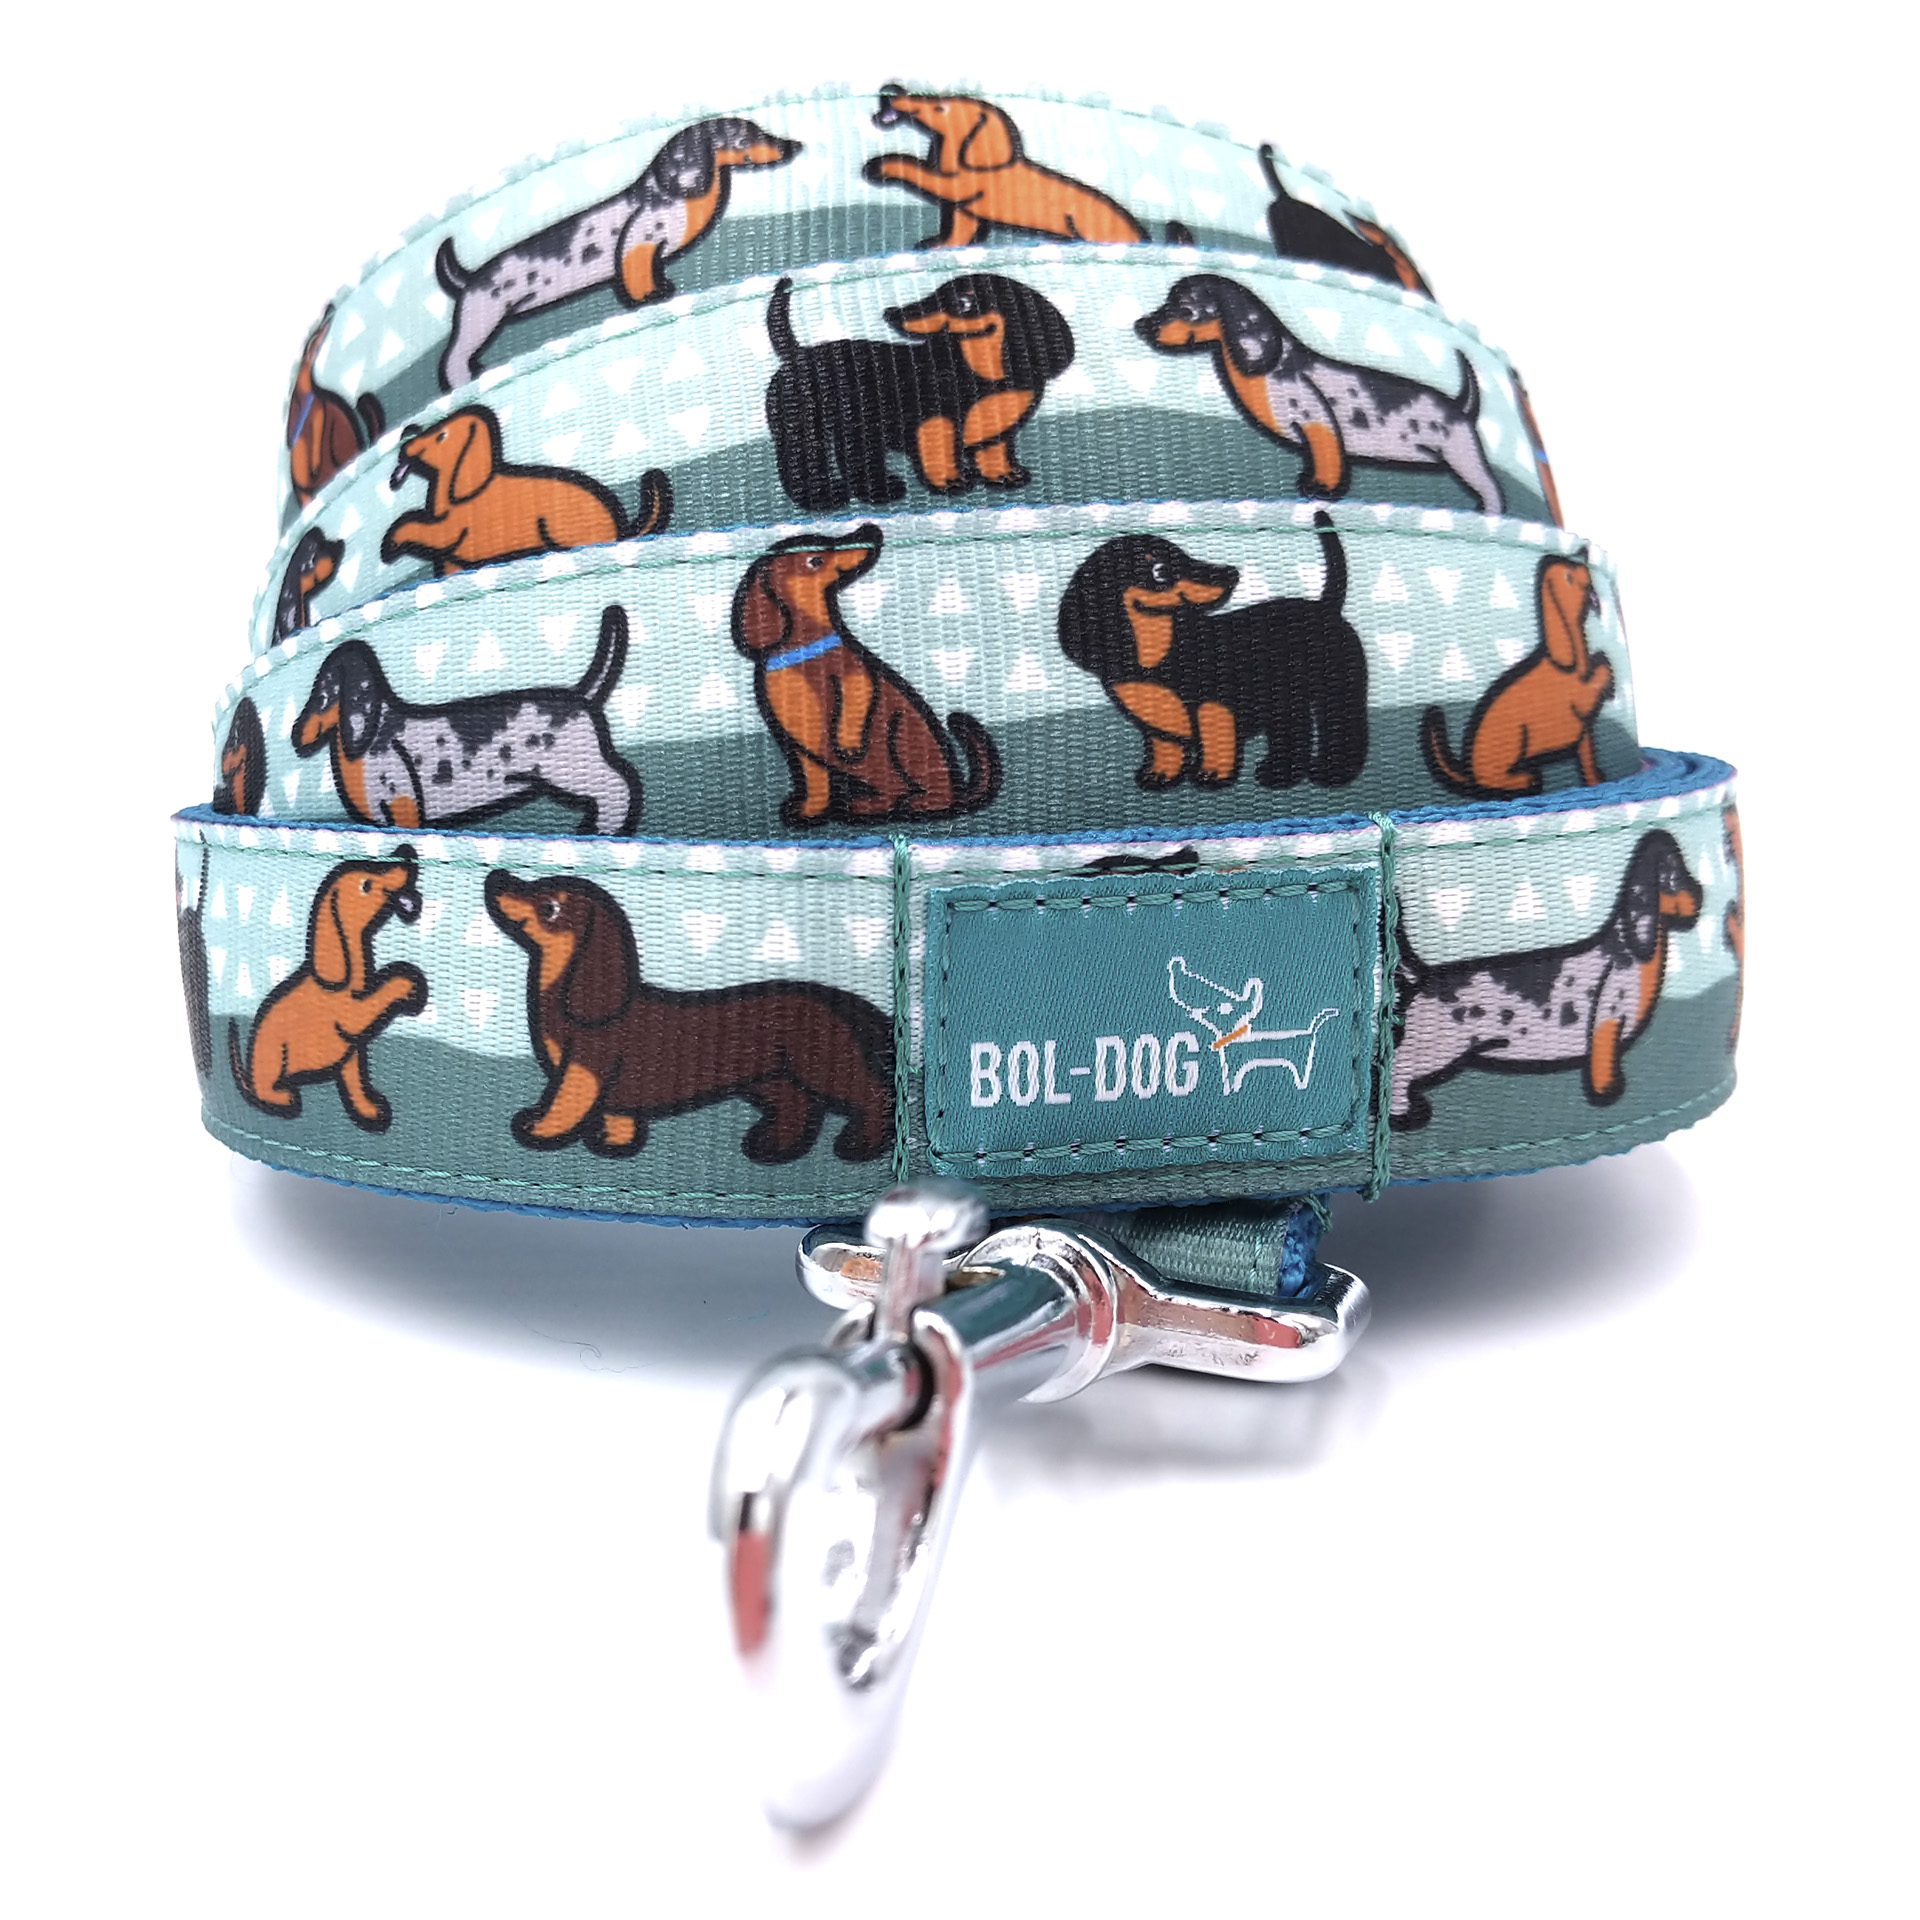 Doxie boy dog leash